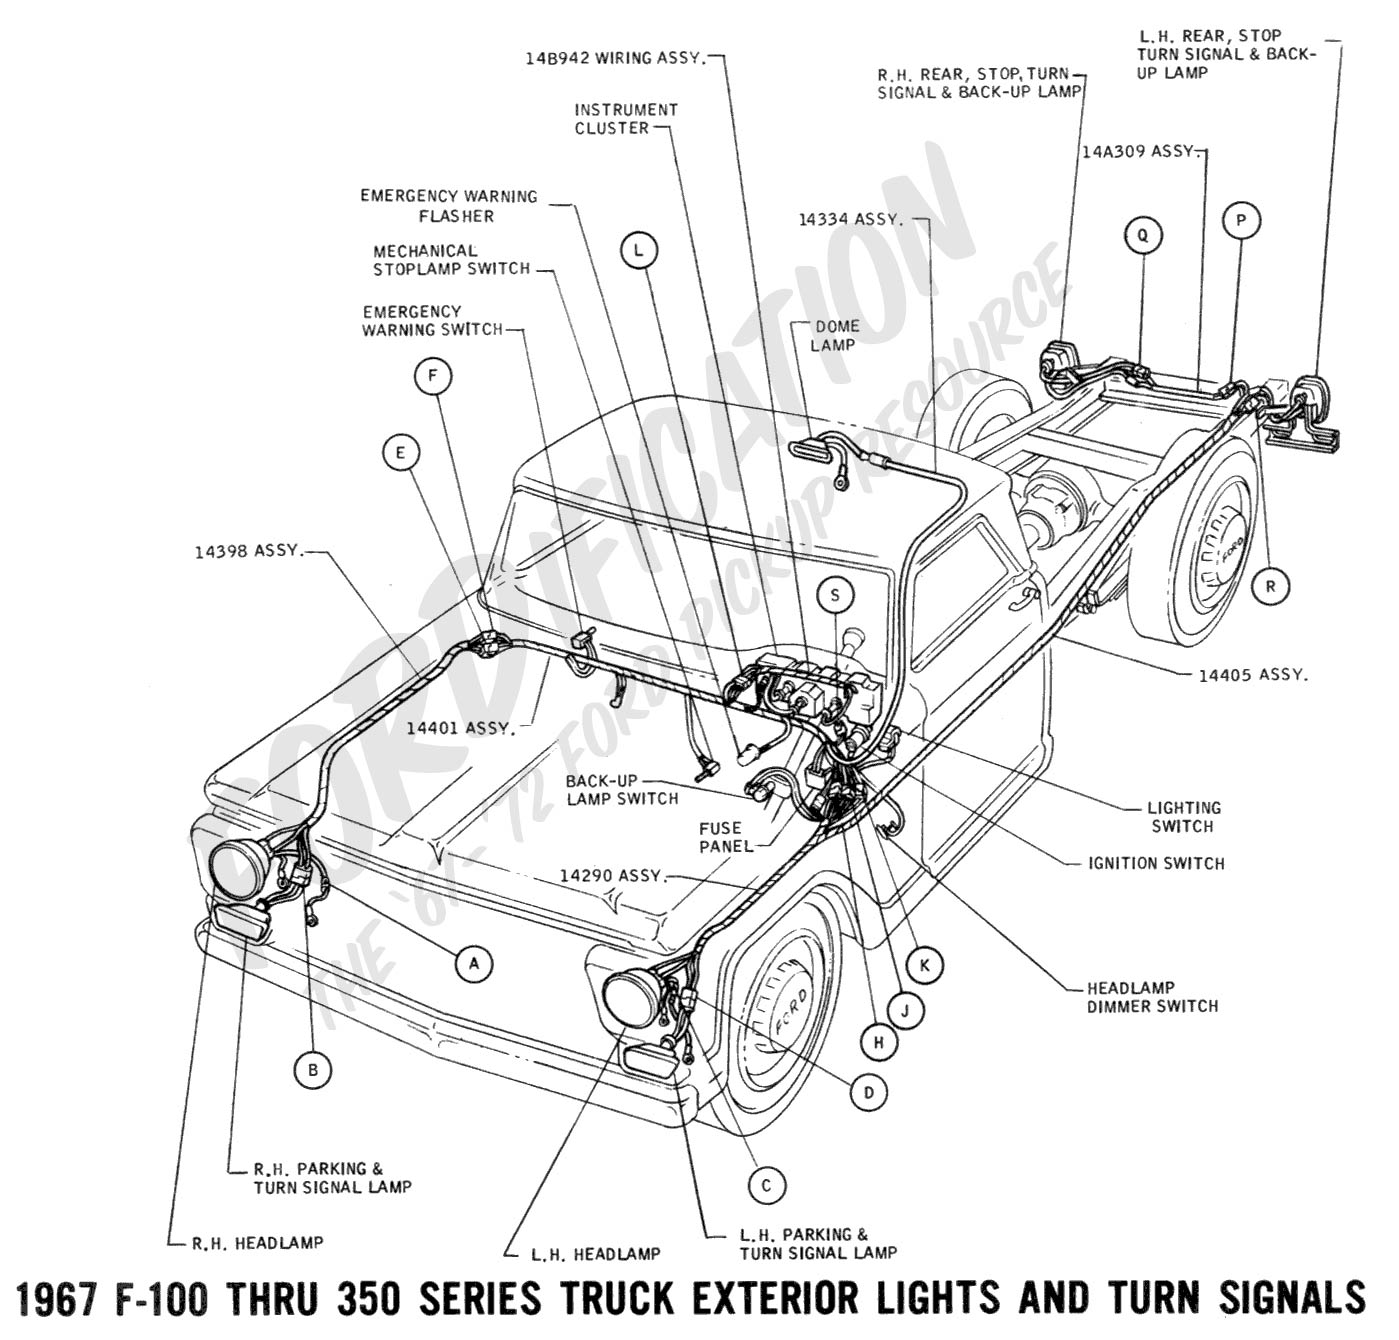 moreover 95 Ford F 350 Solenoid Wiring Diagram also 90 Ford Truck Fuel Tank Switching Valve Wiring Diagram besides P 0900c152802667d8 additionally Fuel Tank Selector Valve Wiring Diagram. on 1986 ford f 250 fuel selector valve wire diagram